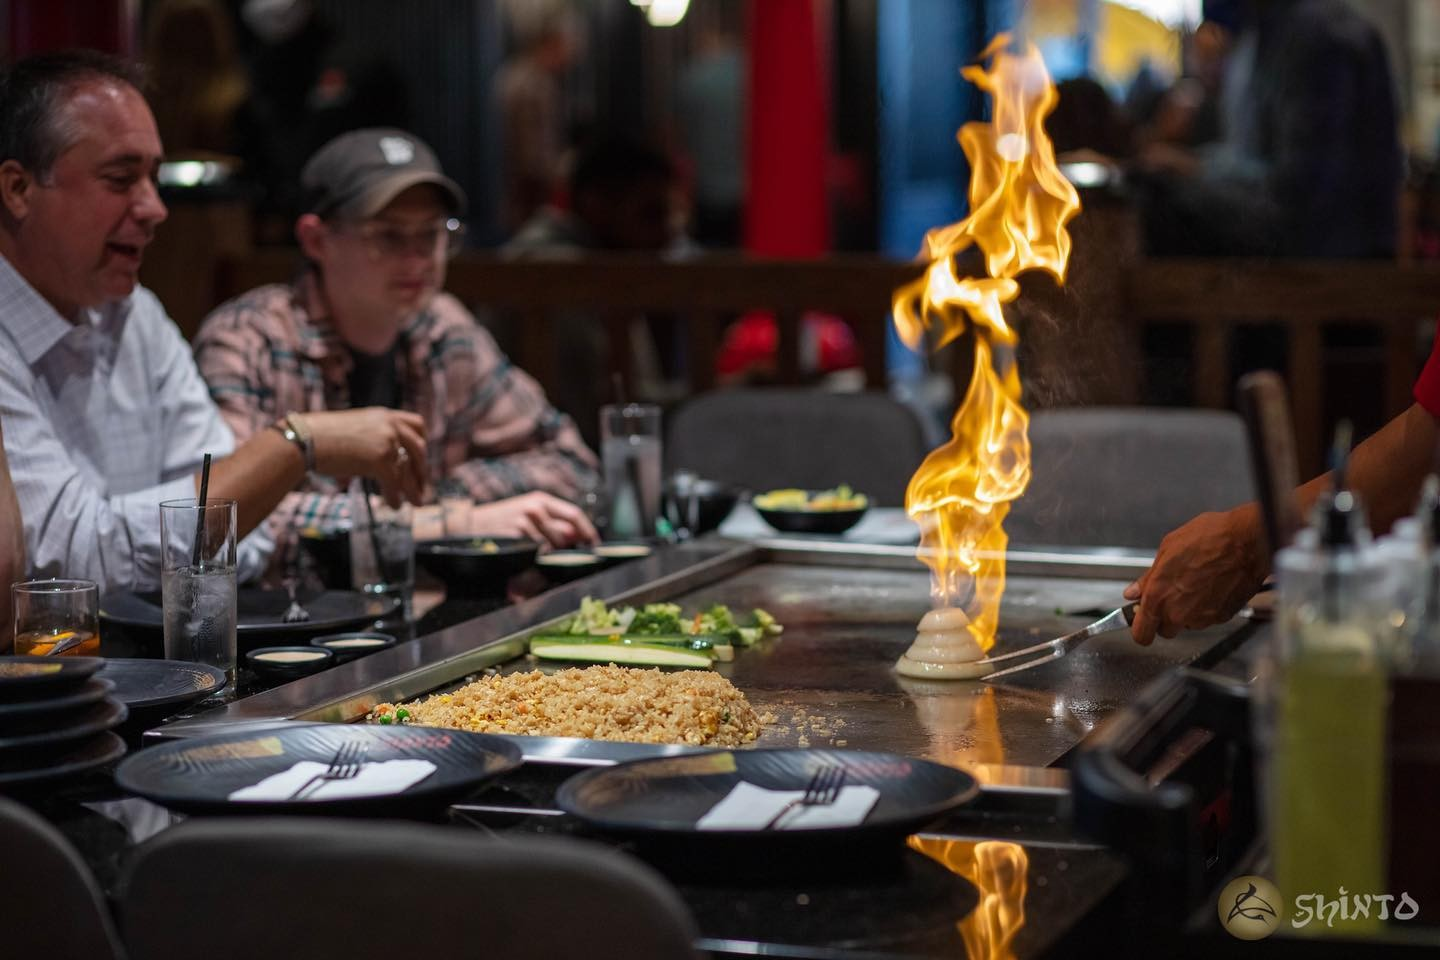 Restaurants Open On Christmas Day 2020 Cleveland Now Open: Shinto Japanese Steakhouse in Westlake | Scene and Heard